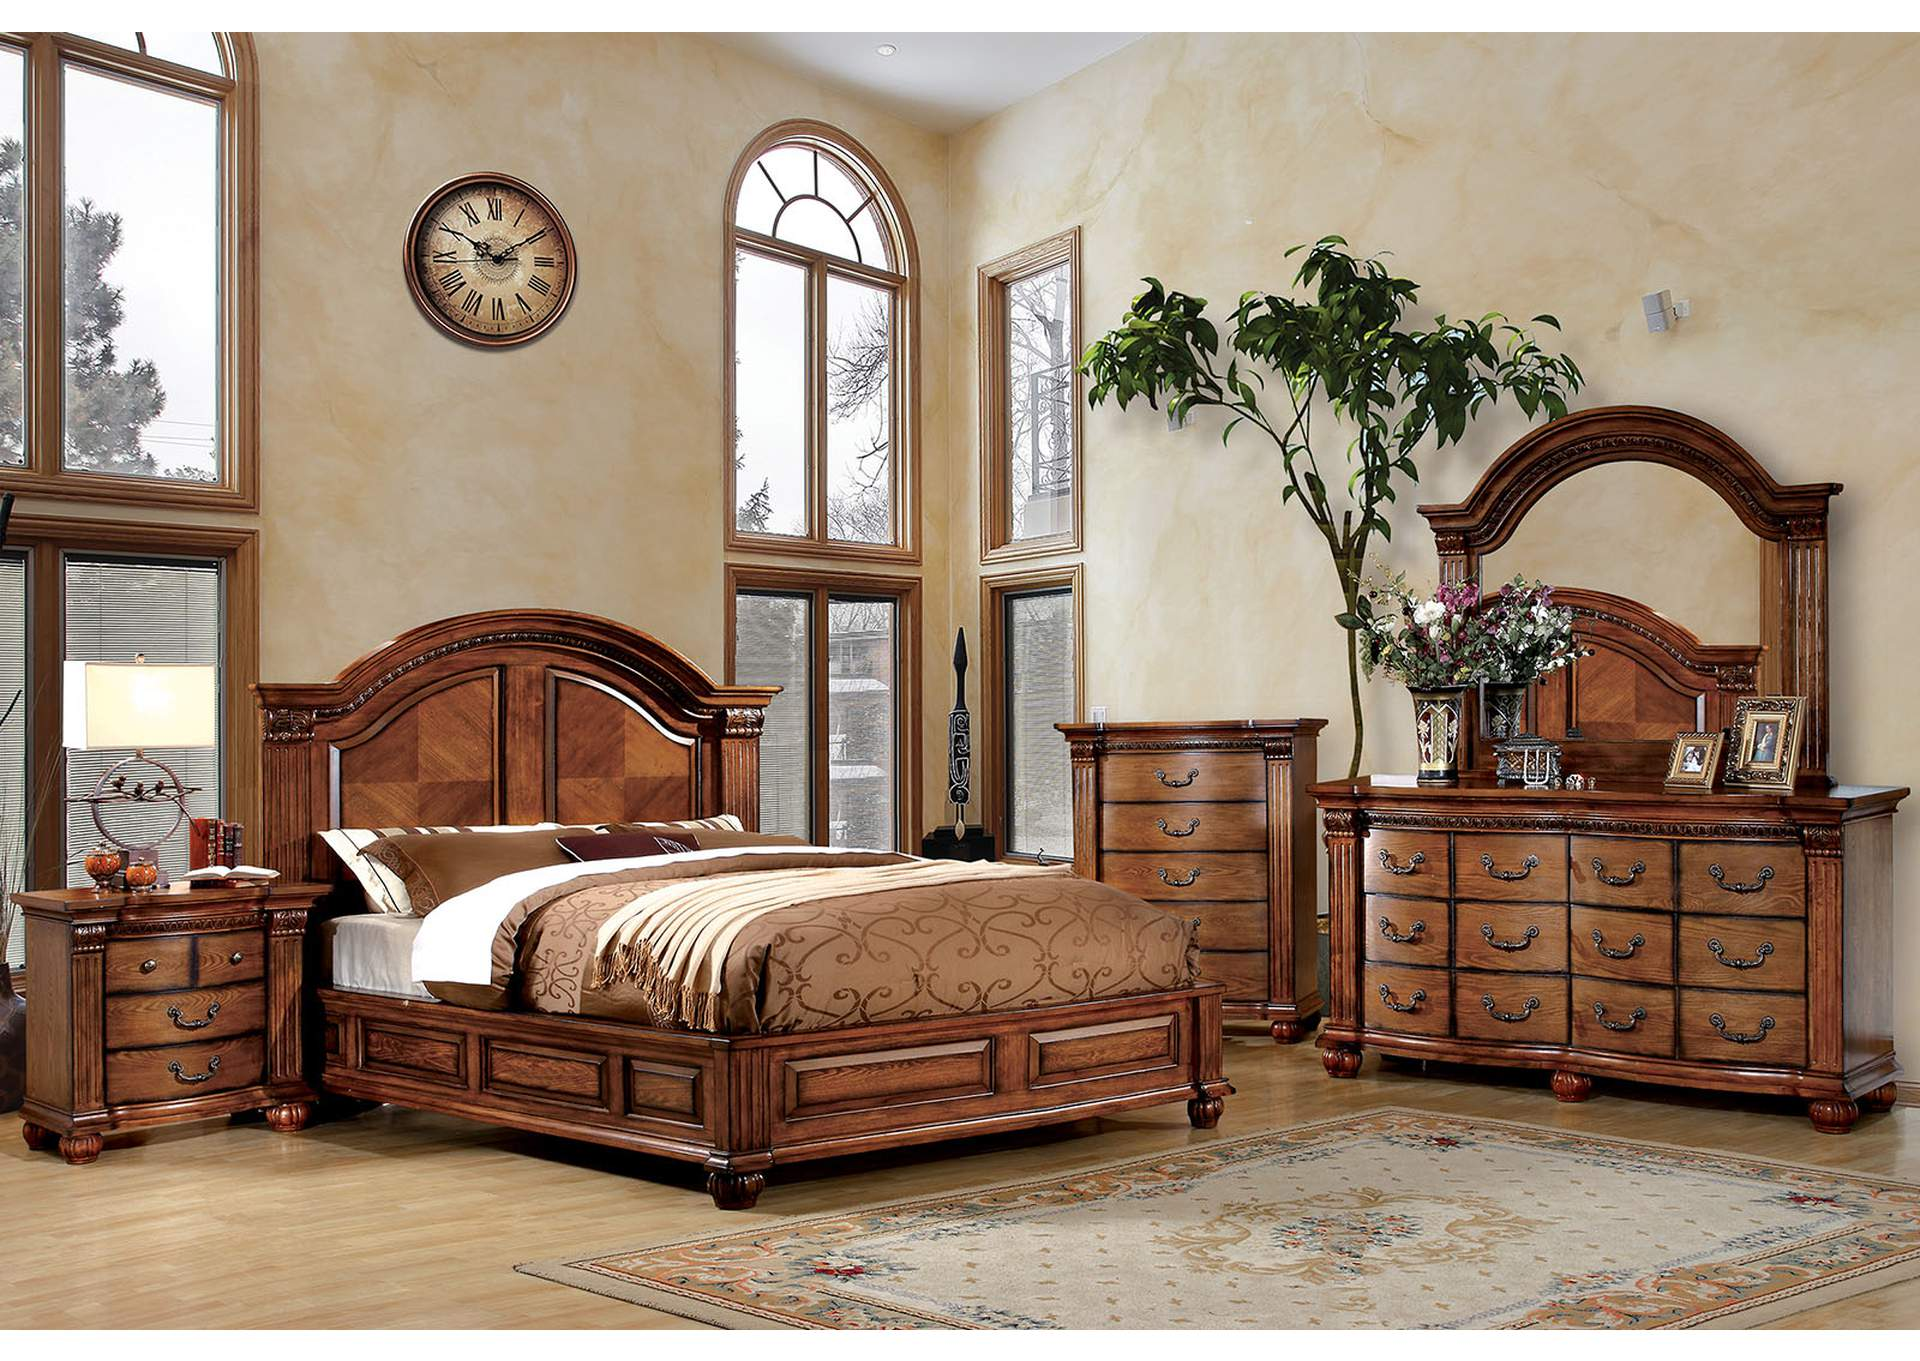 Bellagrand Queen Panel Bed w/Dresser and Mirror,Furniture of America